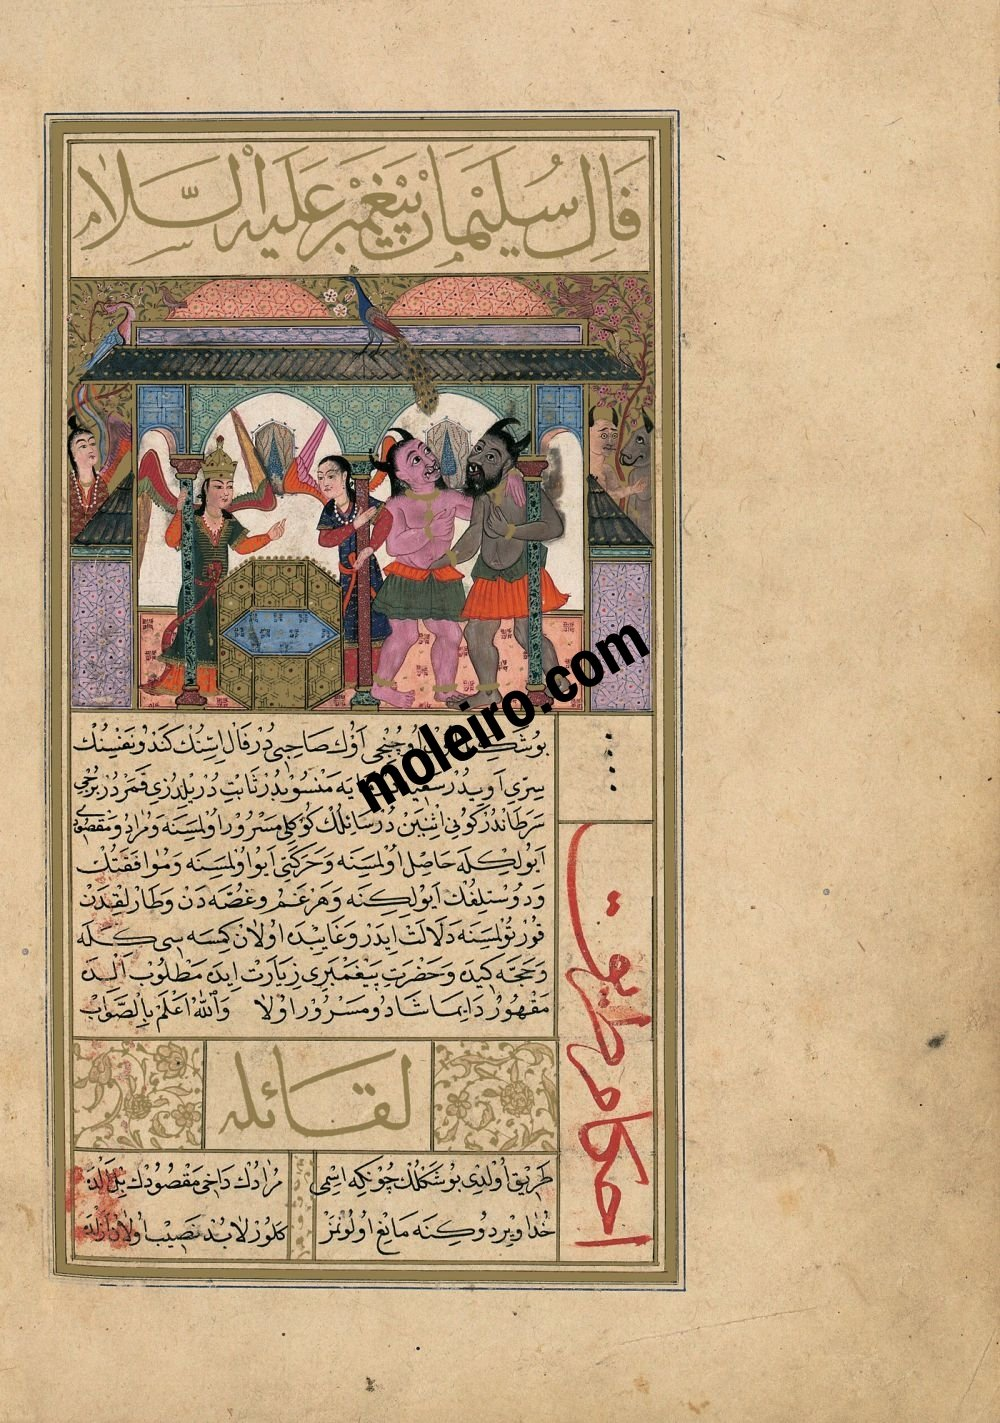 The Book of Felicity f. 131v, The Divination of the Prophet Sulayman (Solomon)